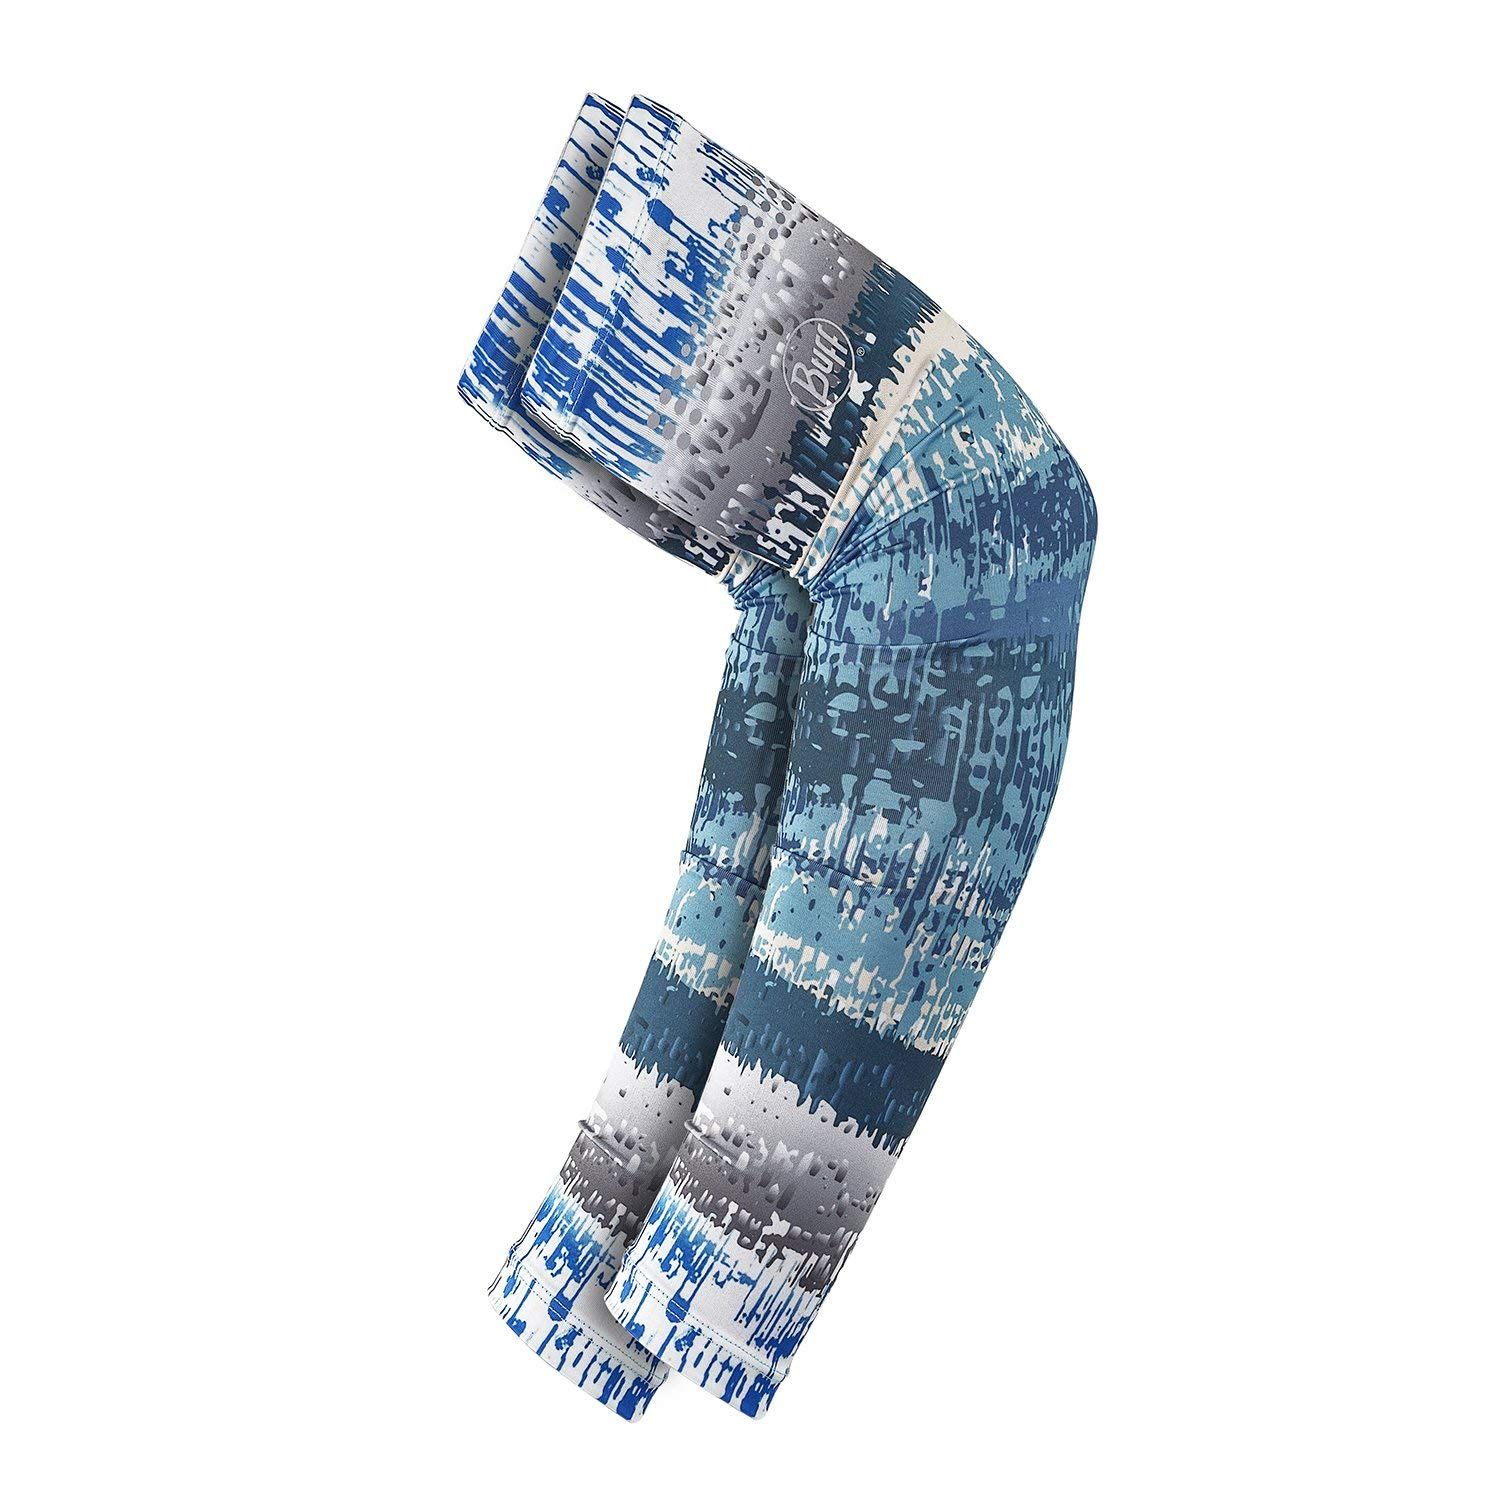 UV Arm Sleeves